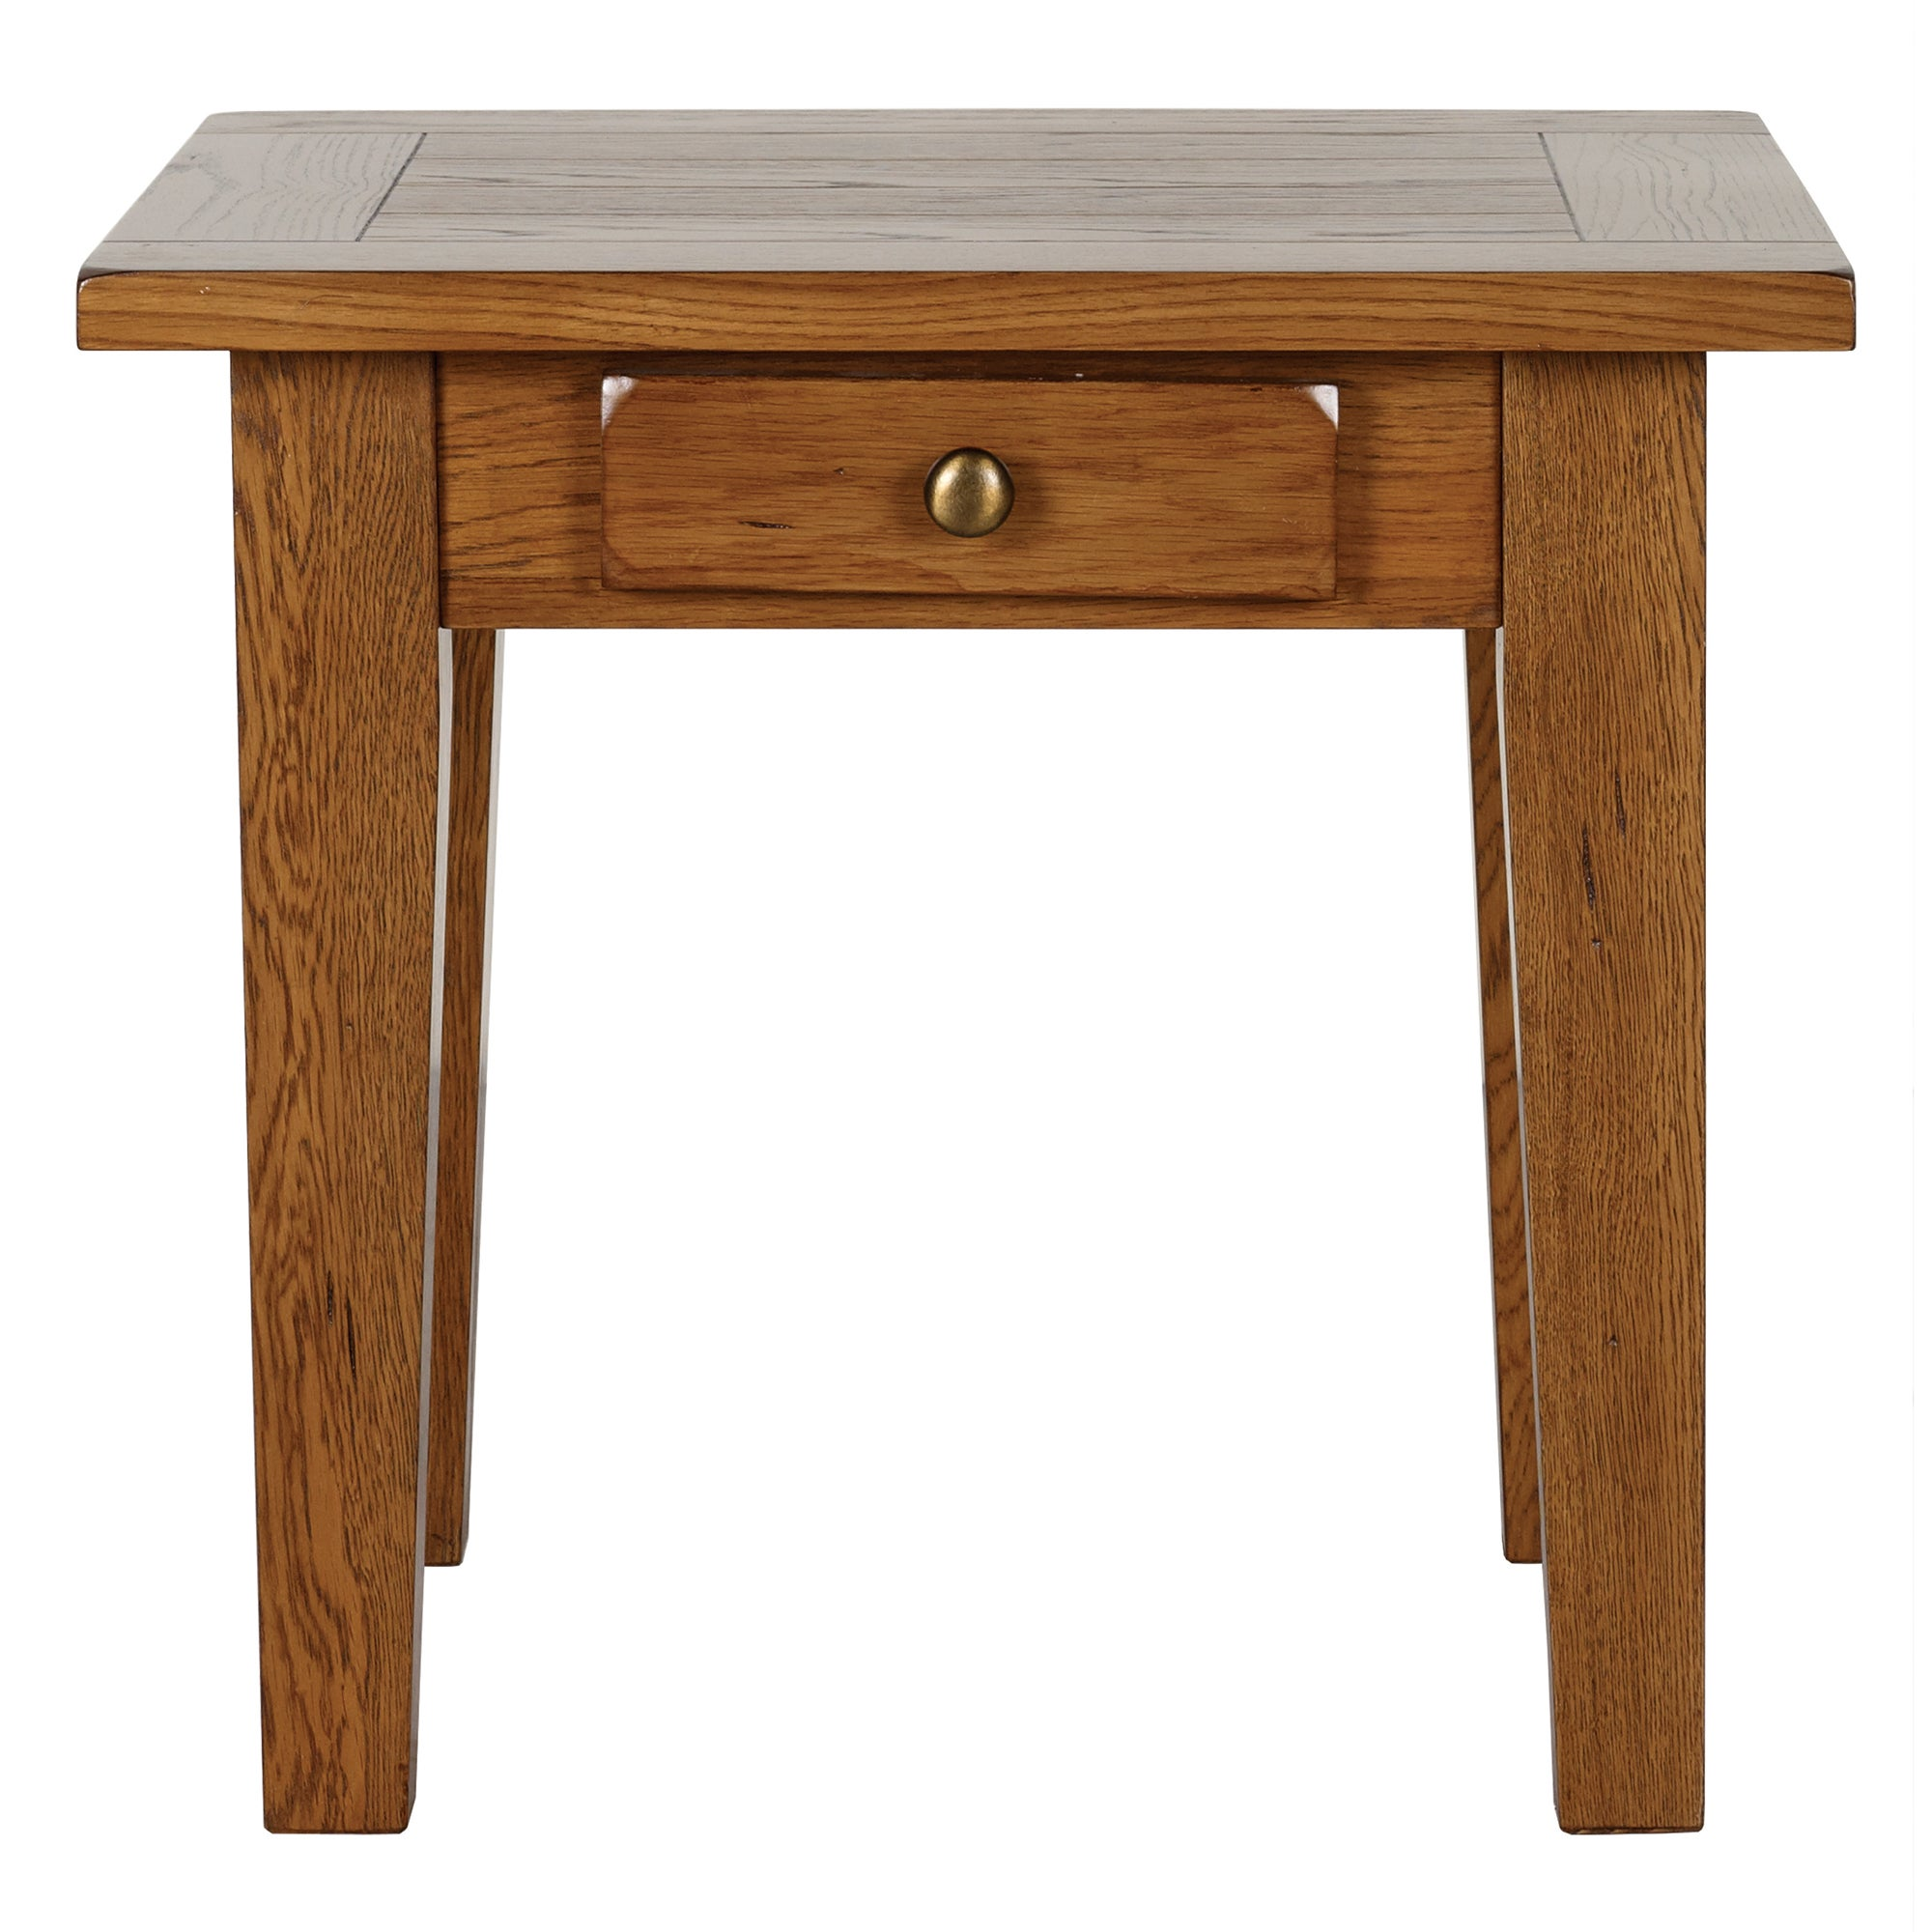 Stamford Rustic Oak Side Table with Drawer